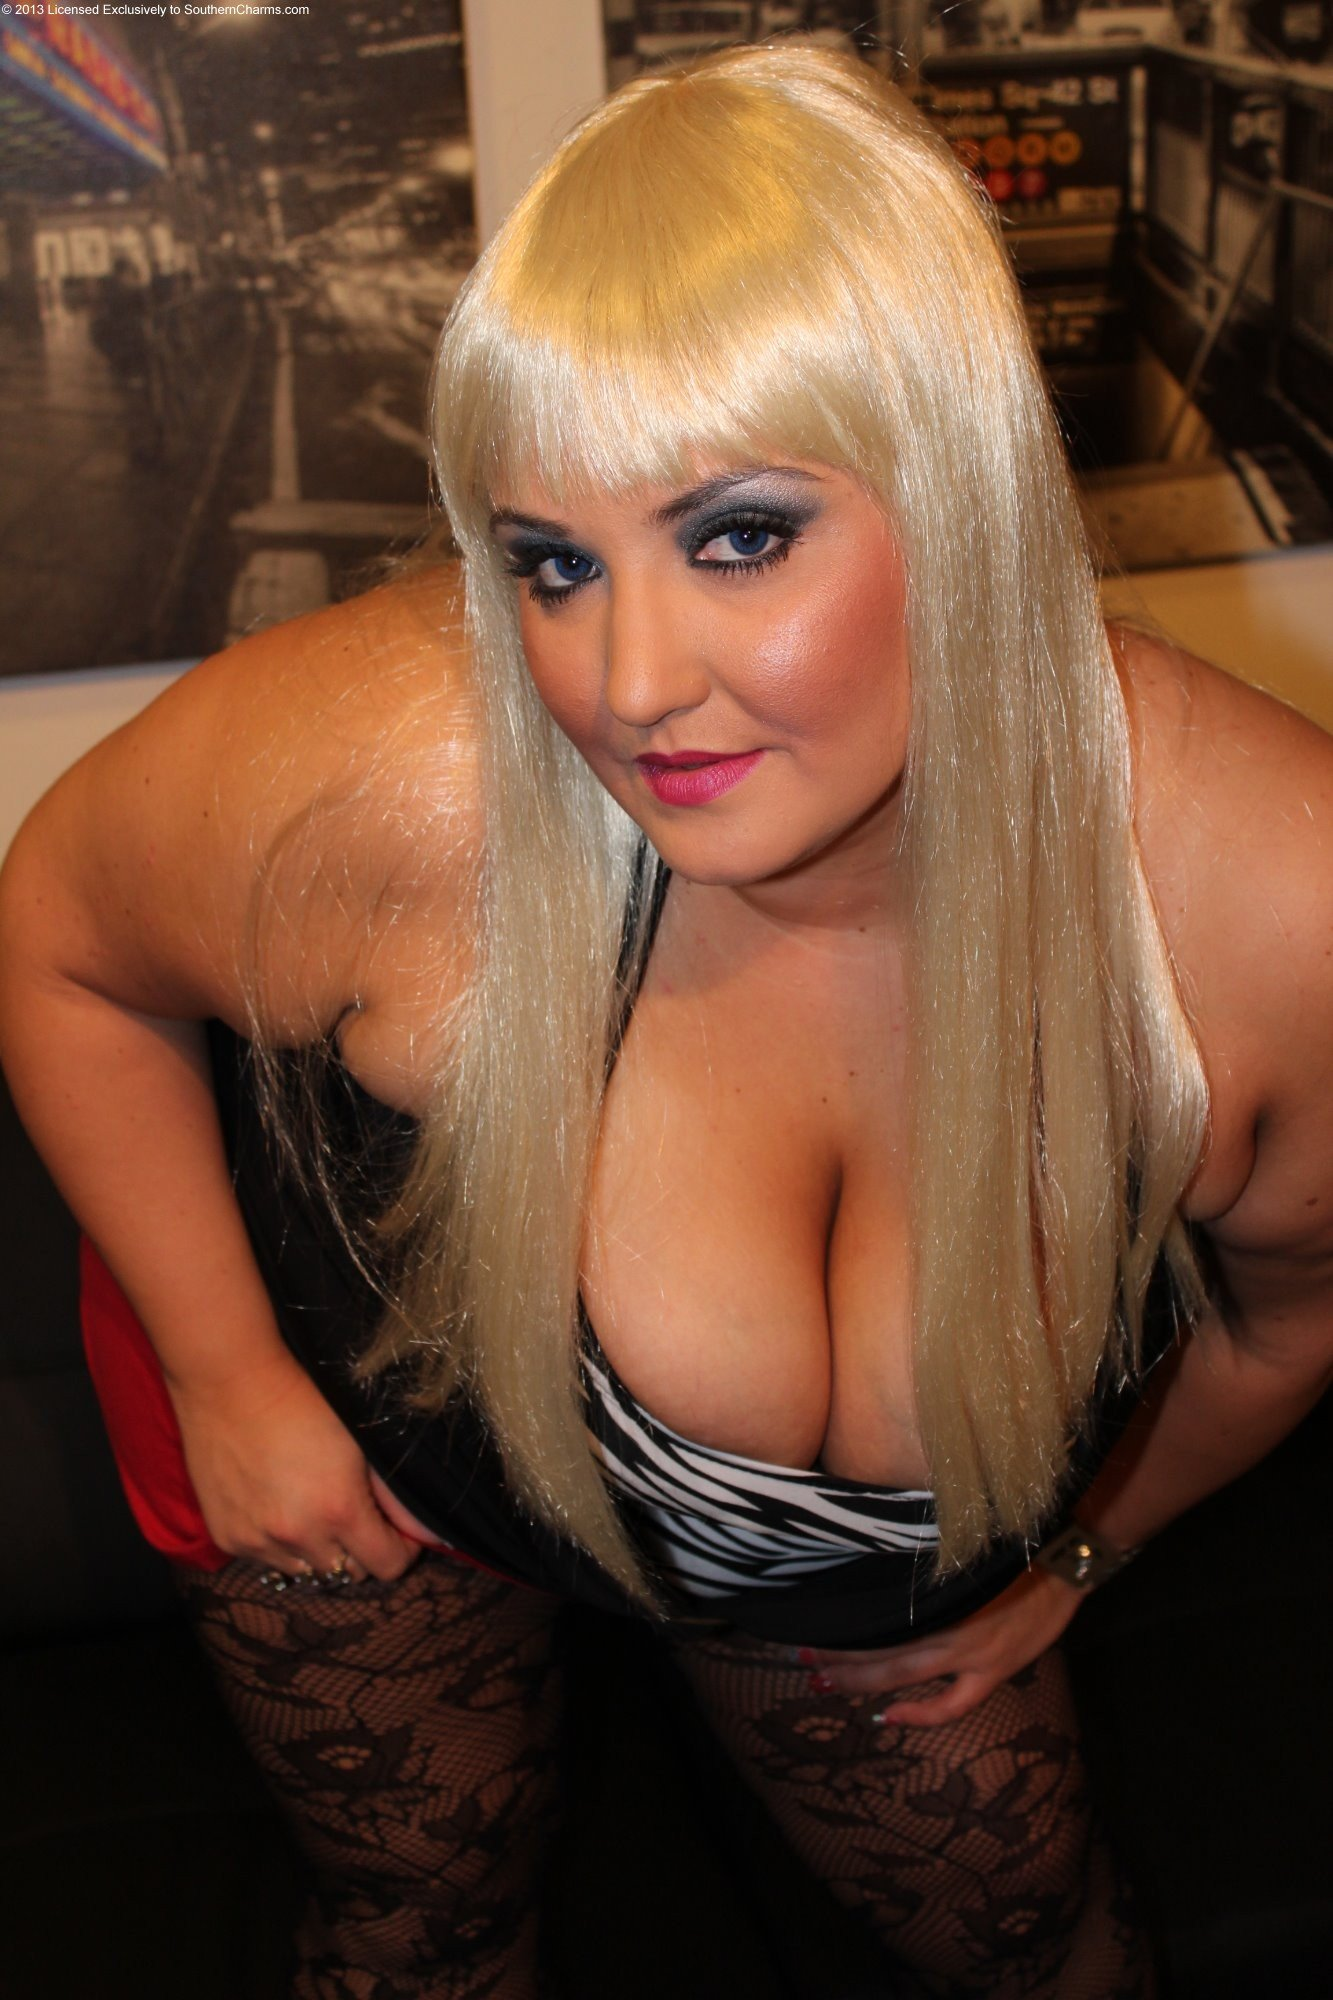 7 year old naturally busty cougar milf #1